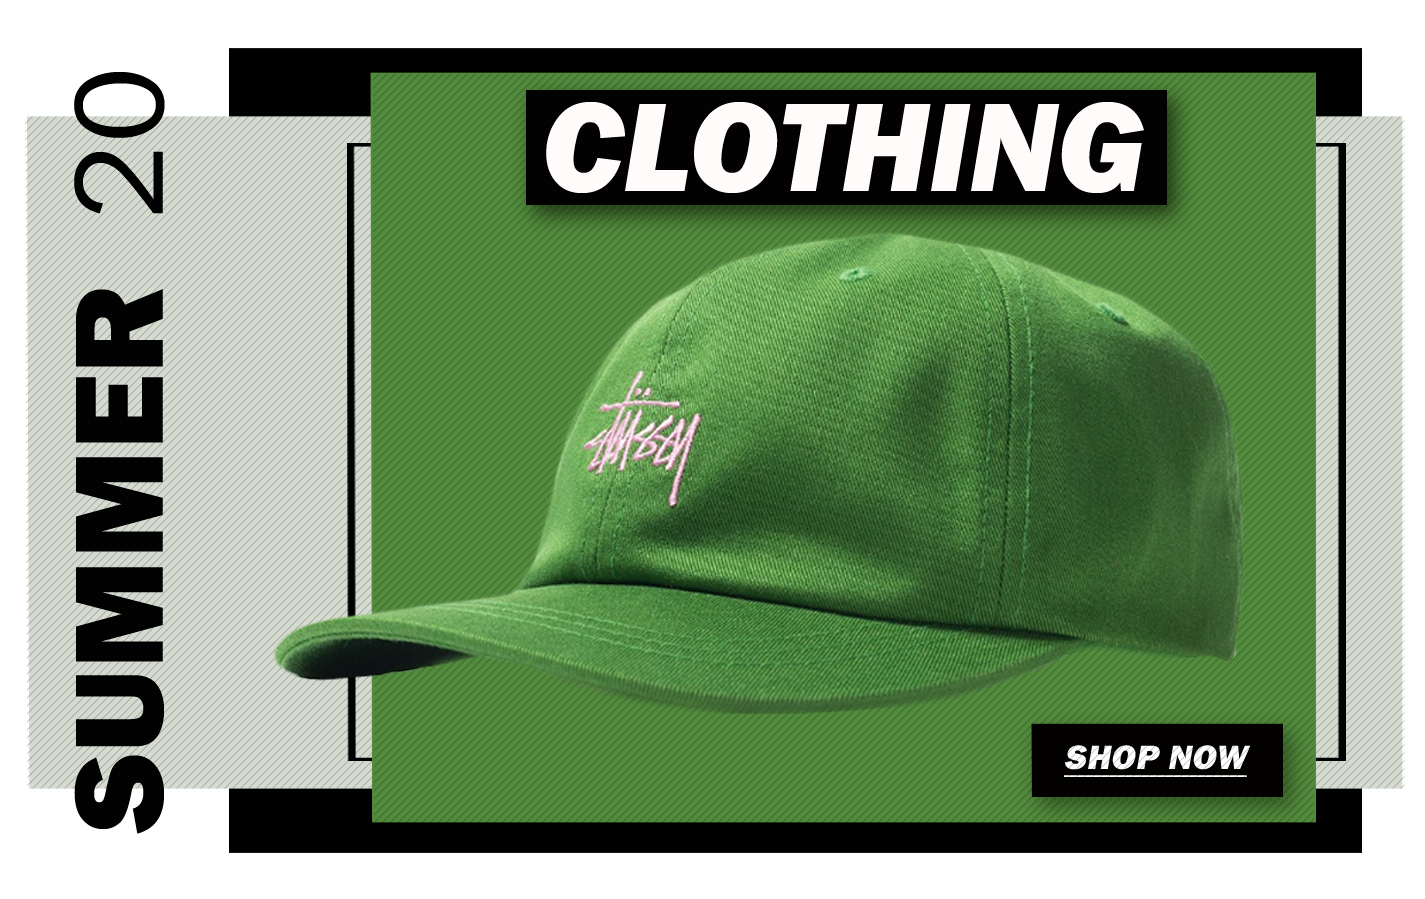 All your favourite Skate clothing and Street wear at all at the best prices from Black Sheep Skate Shop